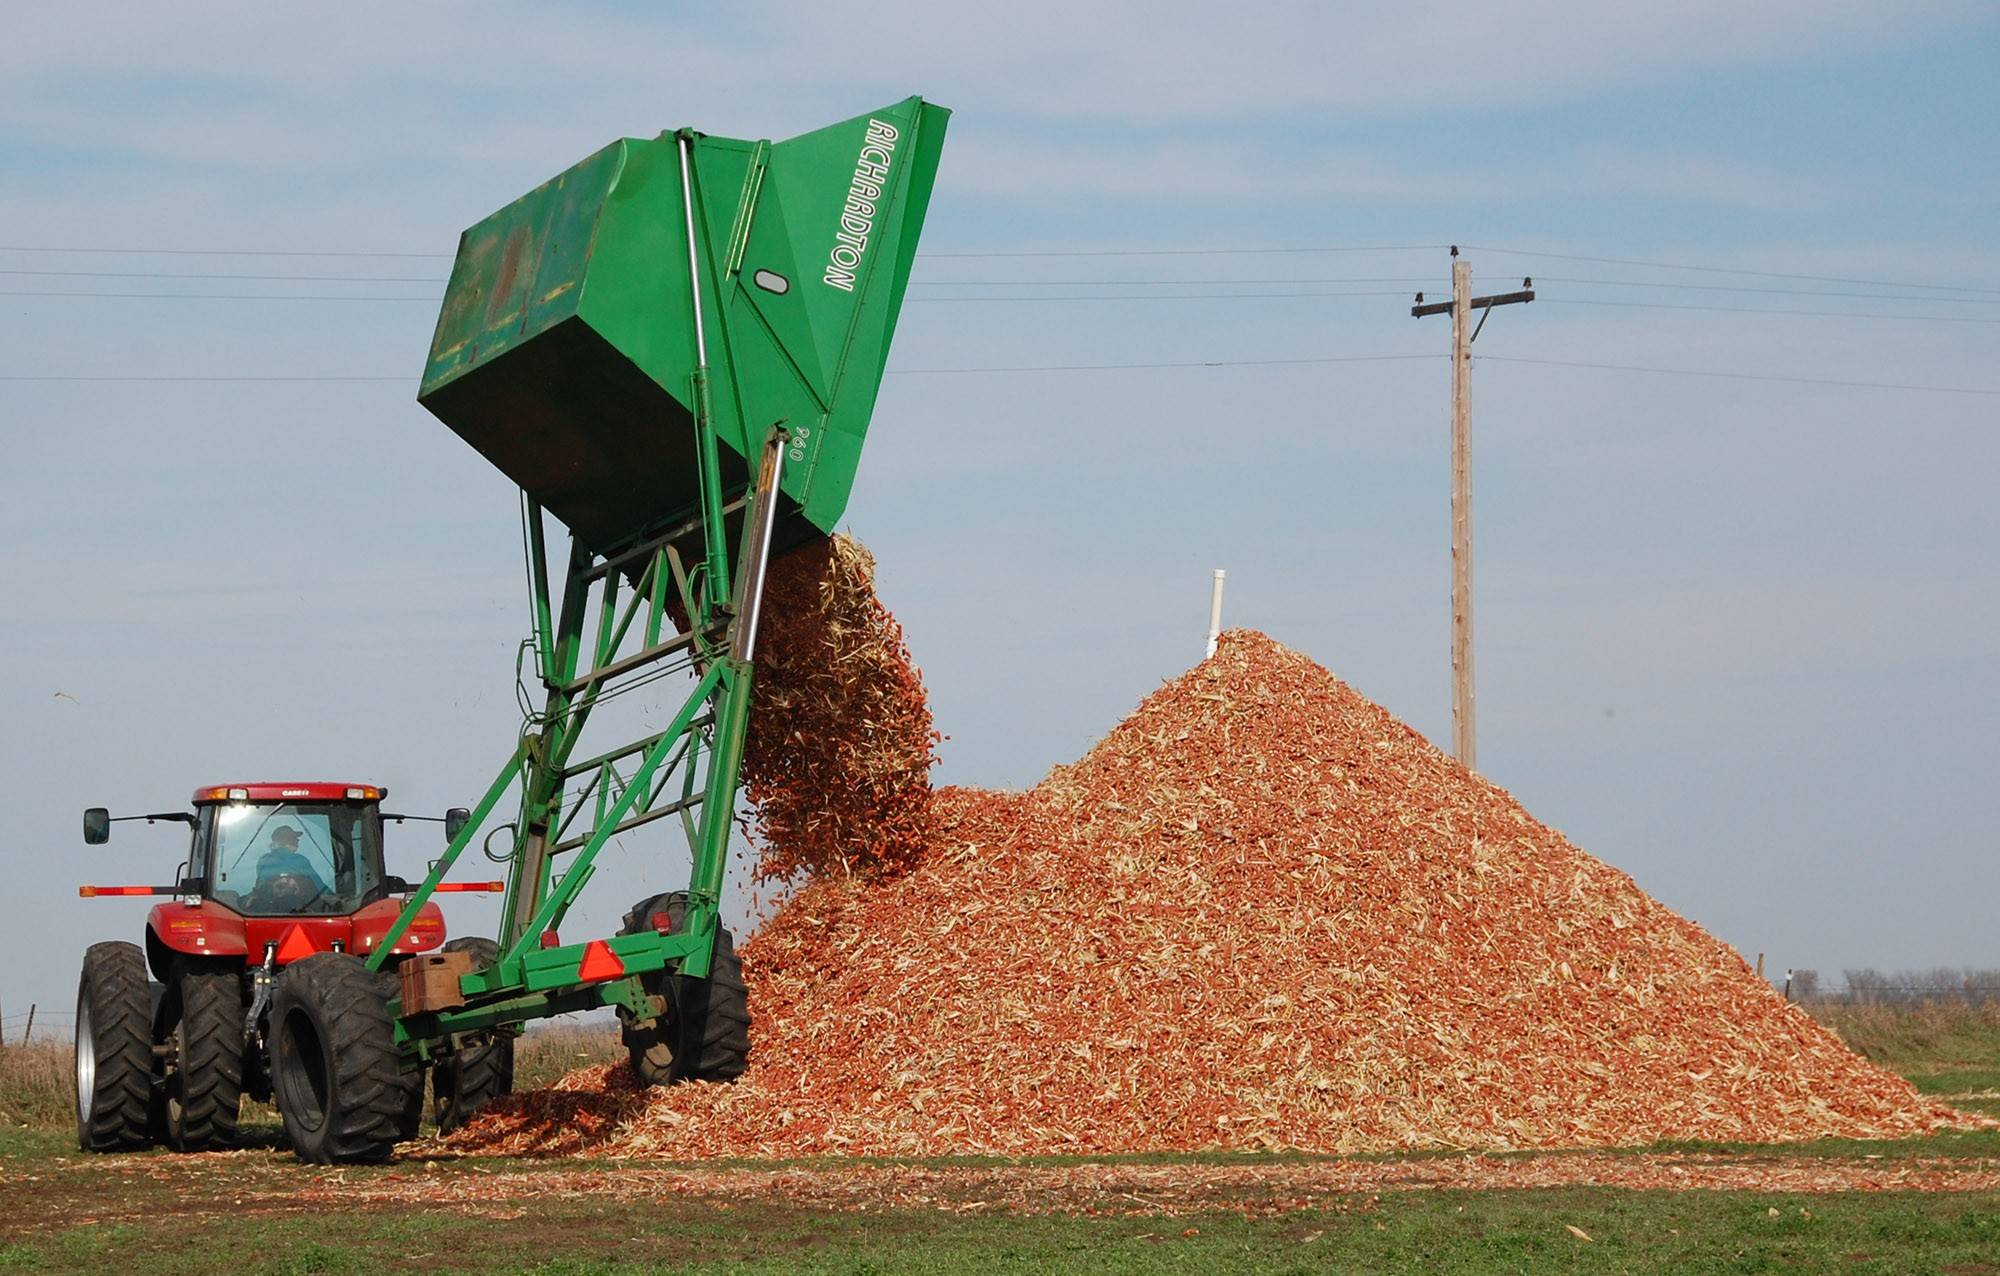 A dump wagon adds freshly gathered corn cobs to a pile on a farm near Hurley, S.D. The first trickle of fuels made from agricultural waste, including corn cobs, is finally winding its way into the nation's energy supply, after years of broken promises and hype promoting a next-generation fuel source cleaner than oil.